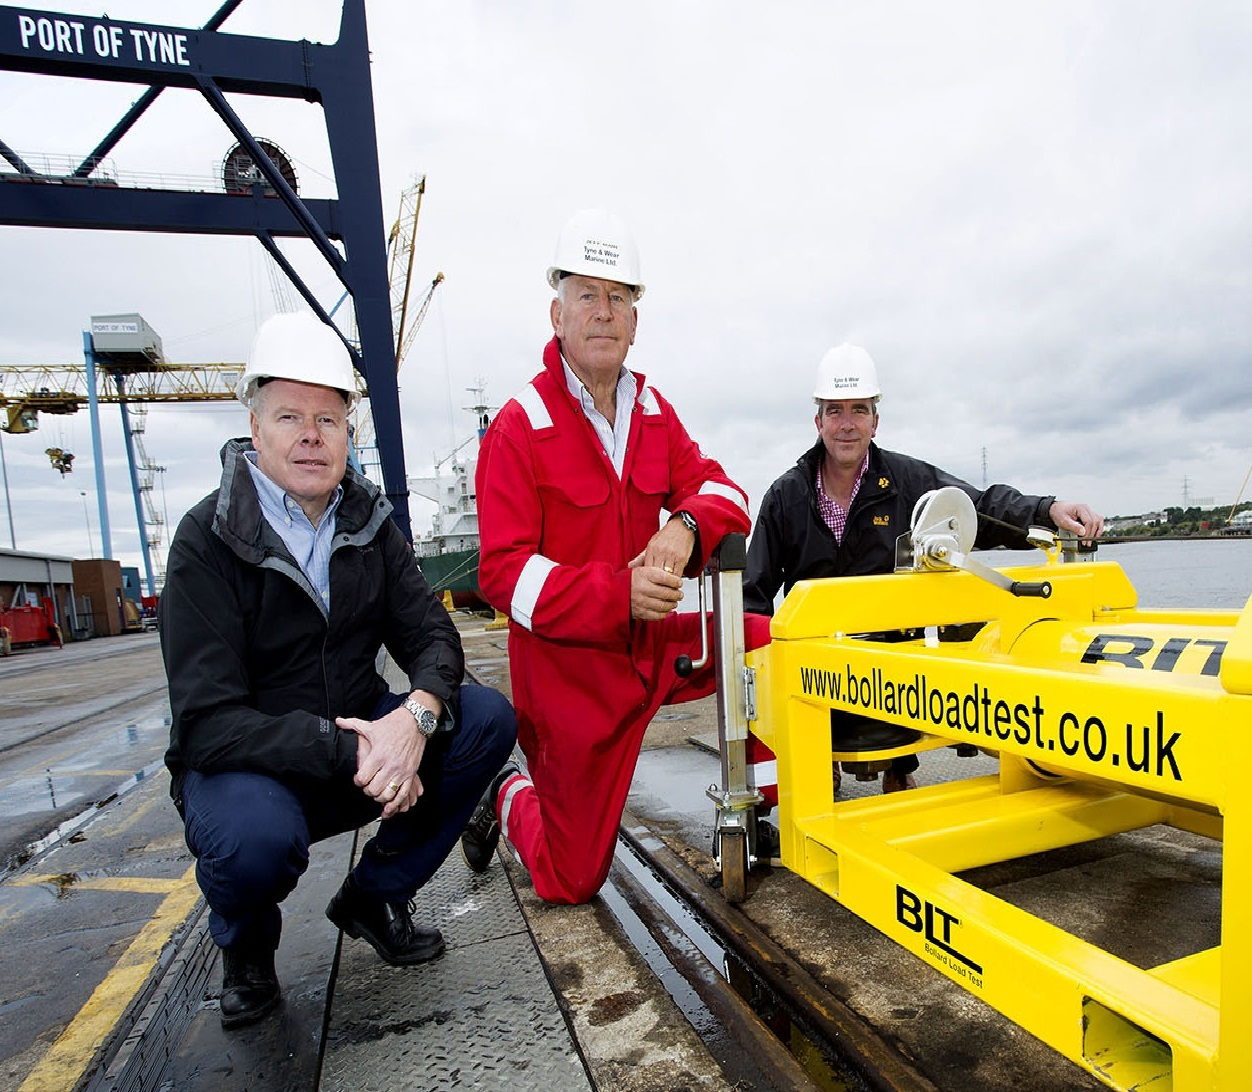 PULLING TOGETHER: Pictured from left to right with the Bollard Load Test device are Alan Hewett, of the Manufacturing Advisory Service, Jeff Main, director of Tyne and Wear Marine, and Ade Walton, from Prozeus